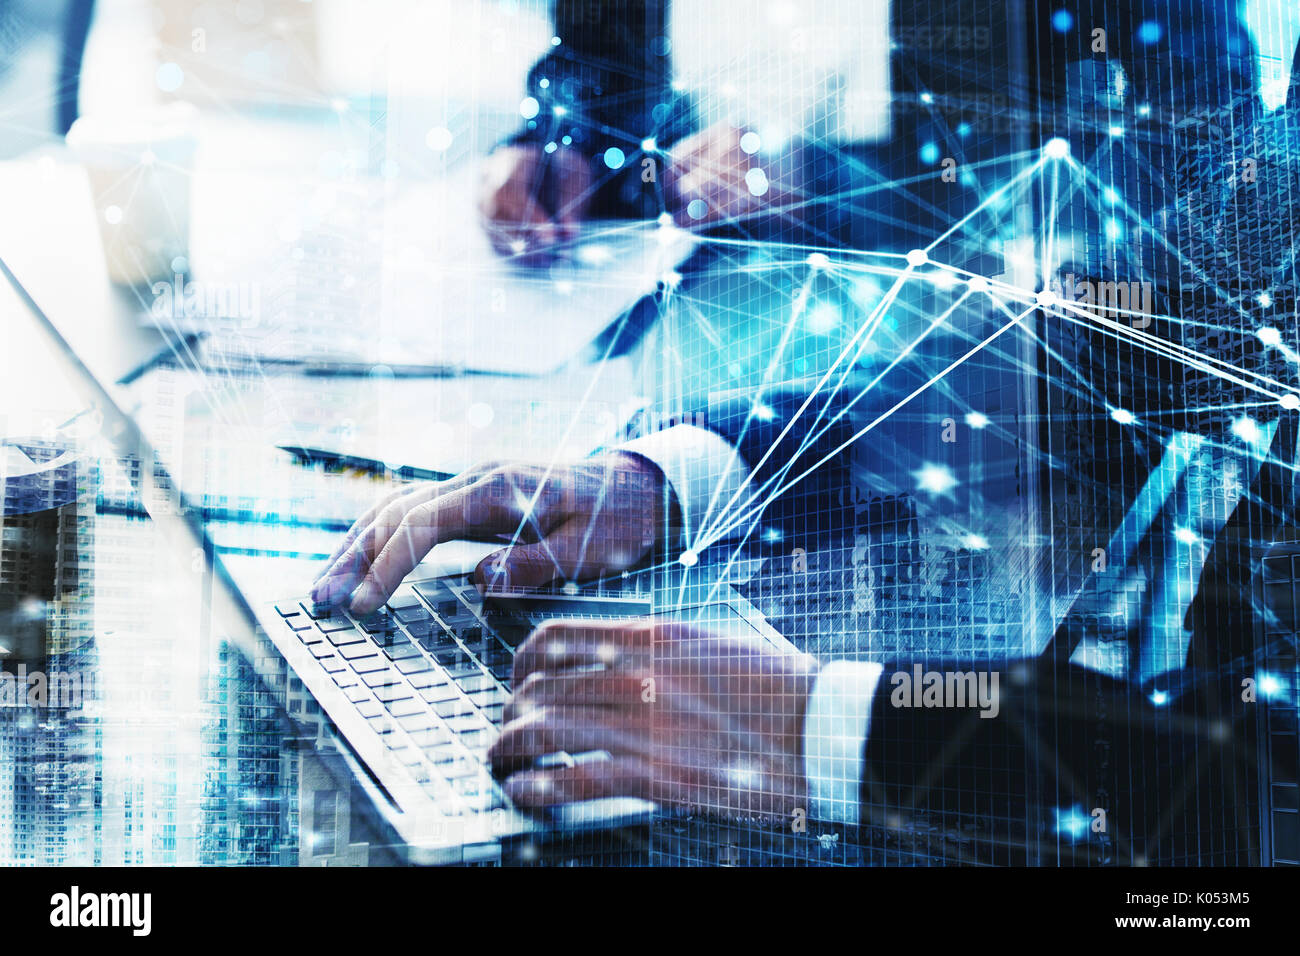 Businessperson in office connected on internet network. concept of partnership and teamwork - Stock Image